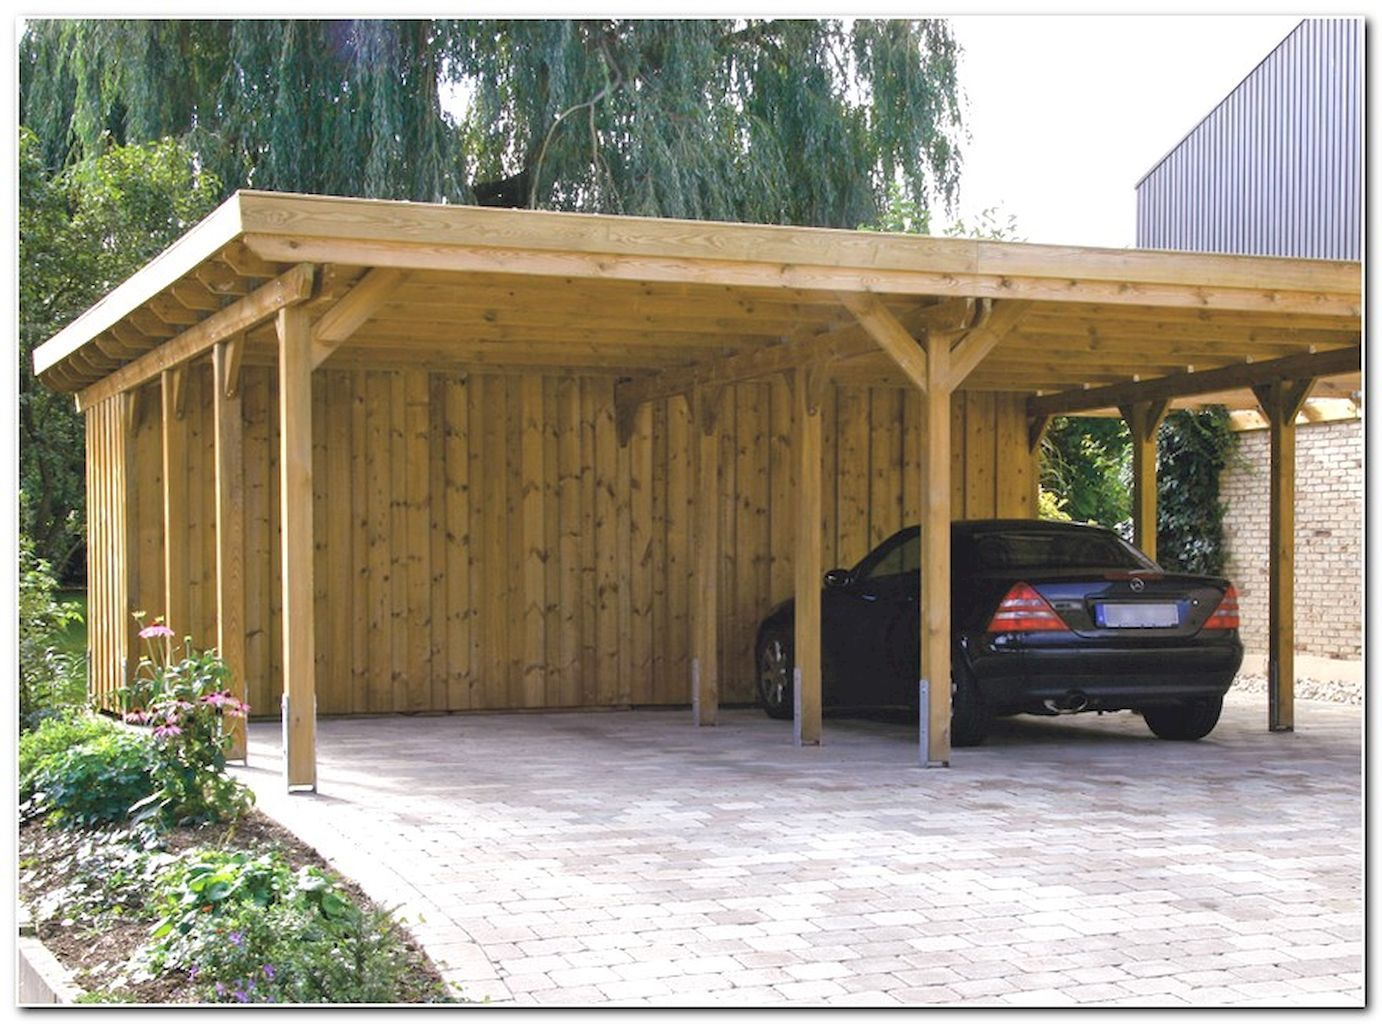 Doppelgarage modern holz  55 Adorable Modern Carports Garage Designs Ideas